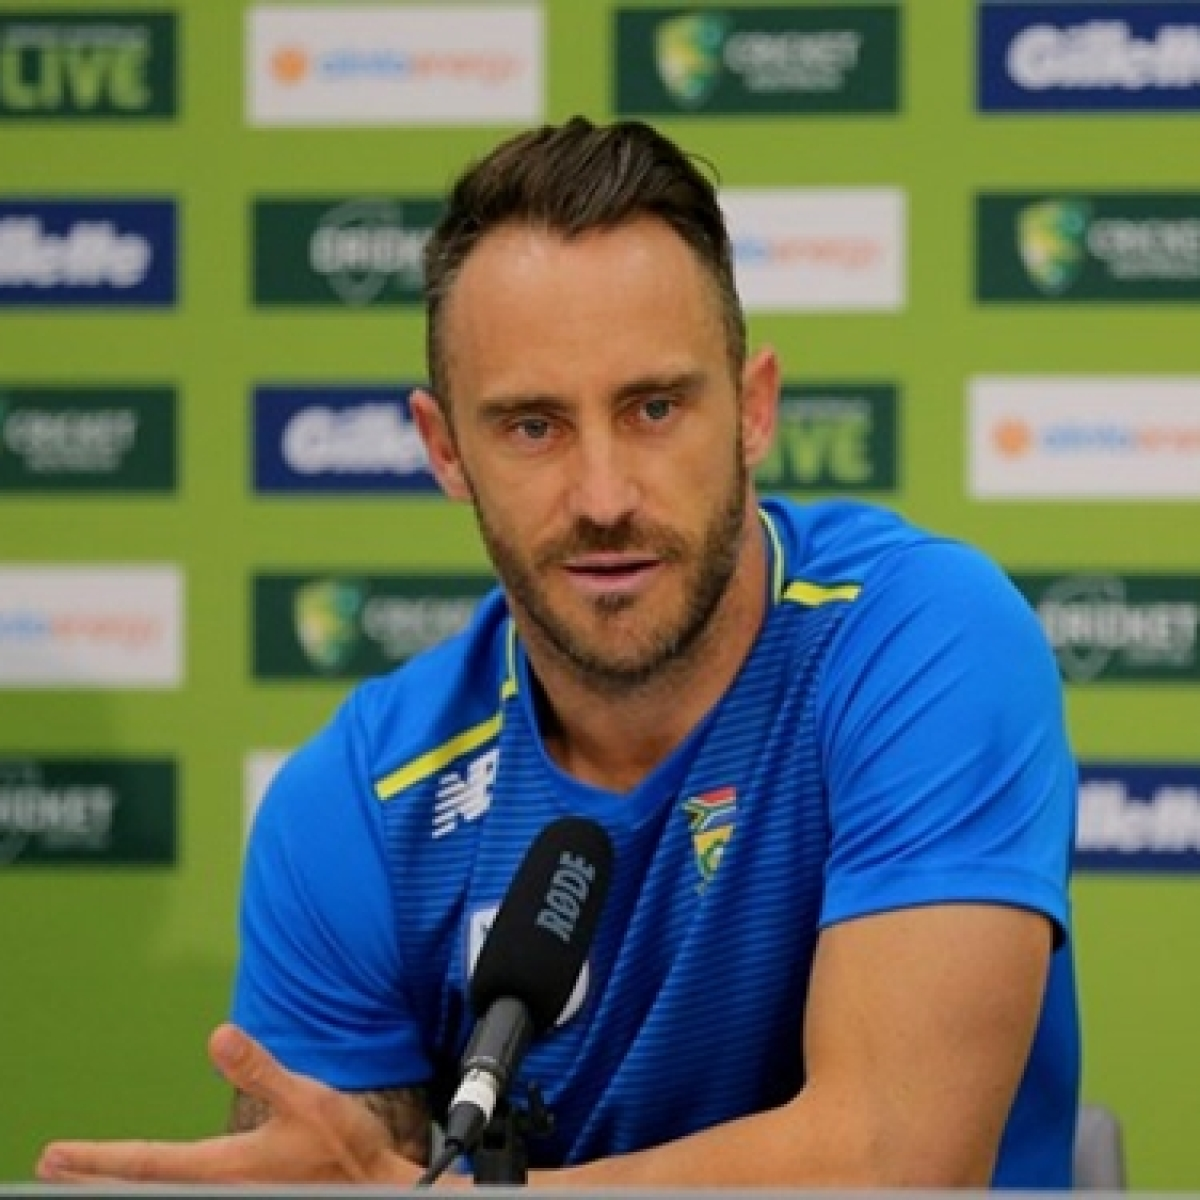 'He's in bed with my sister': Faf du Plessis' hilarious team update leaves internet in splits